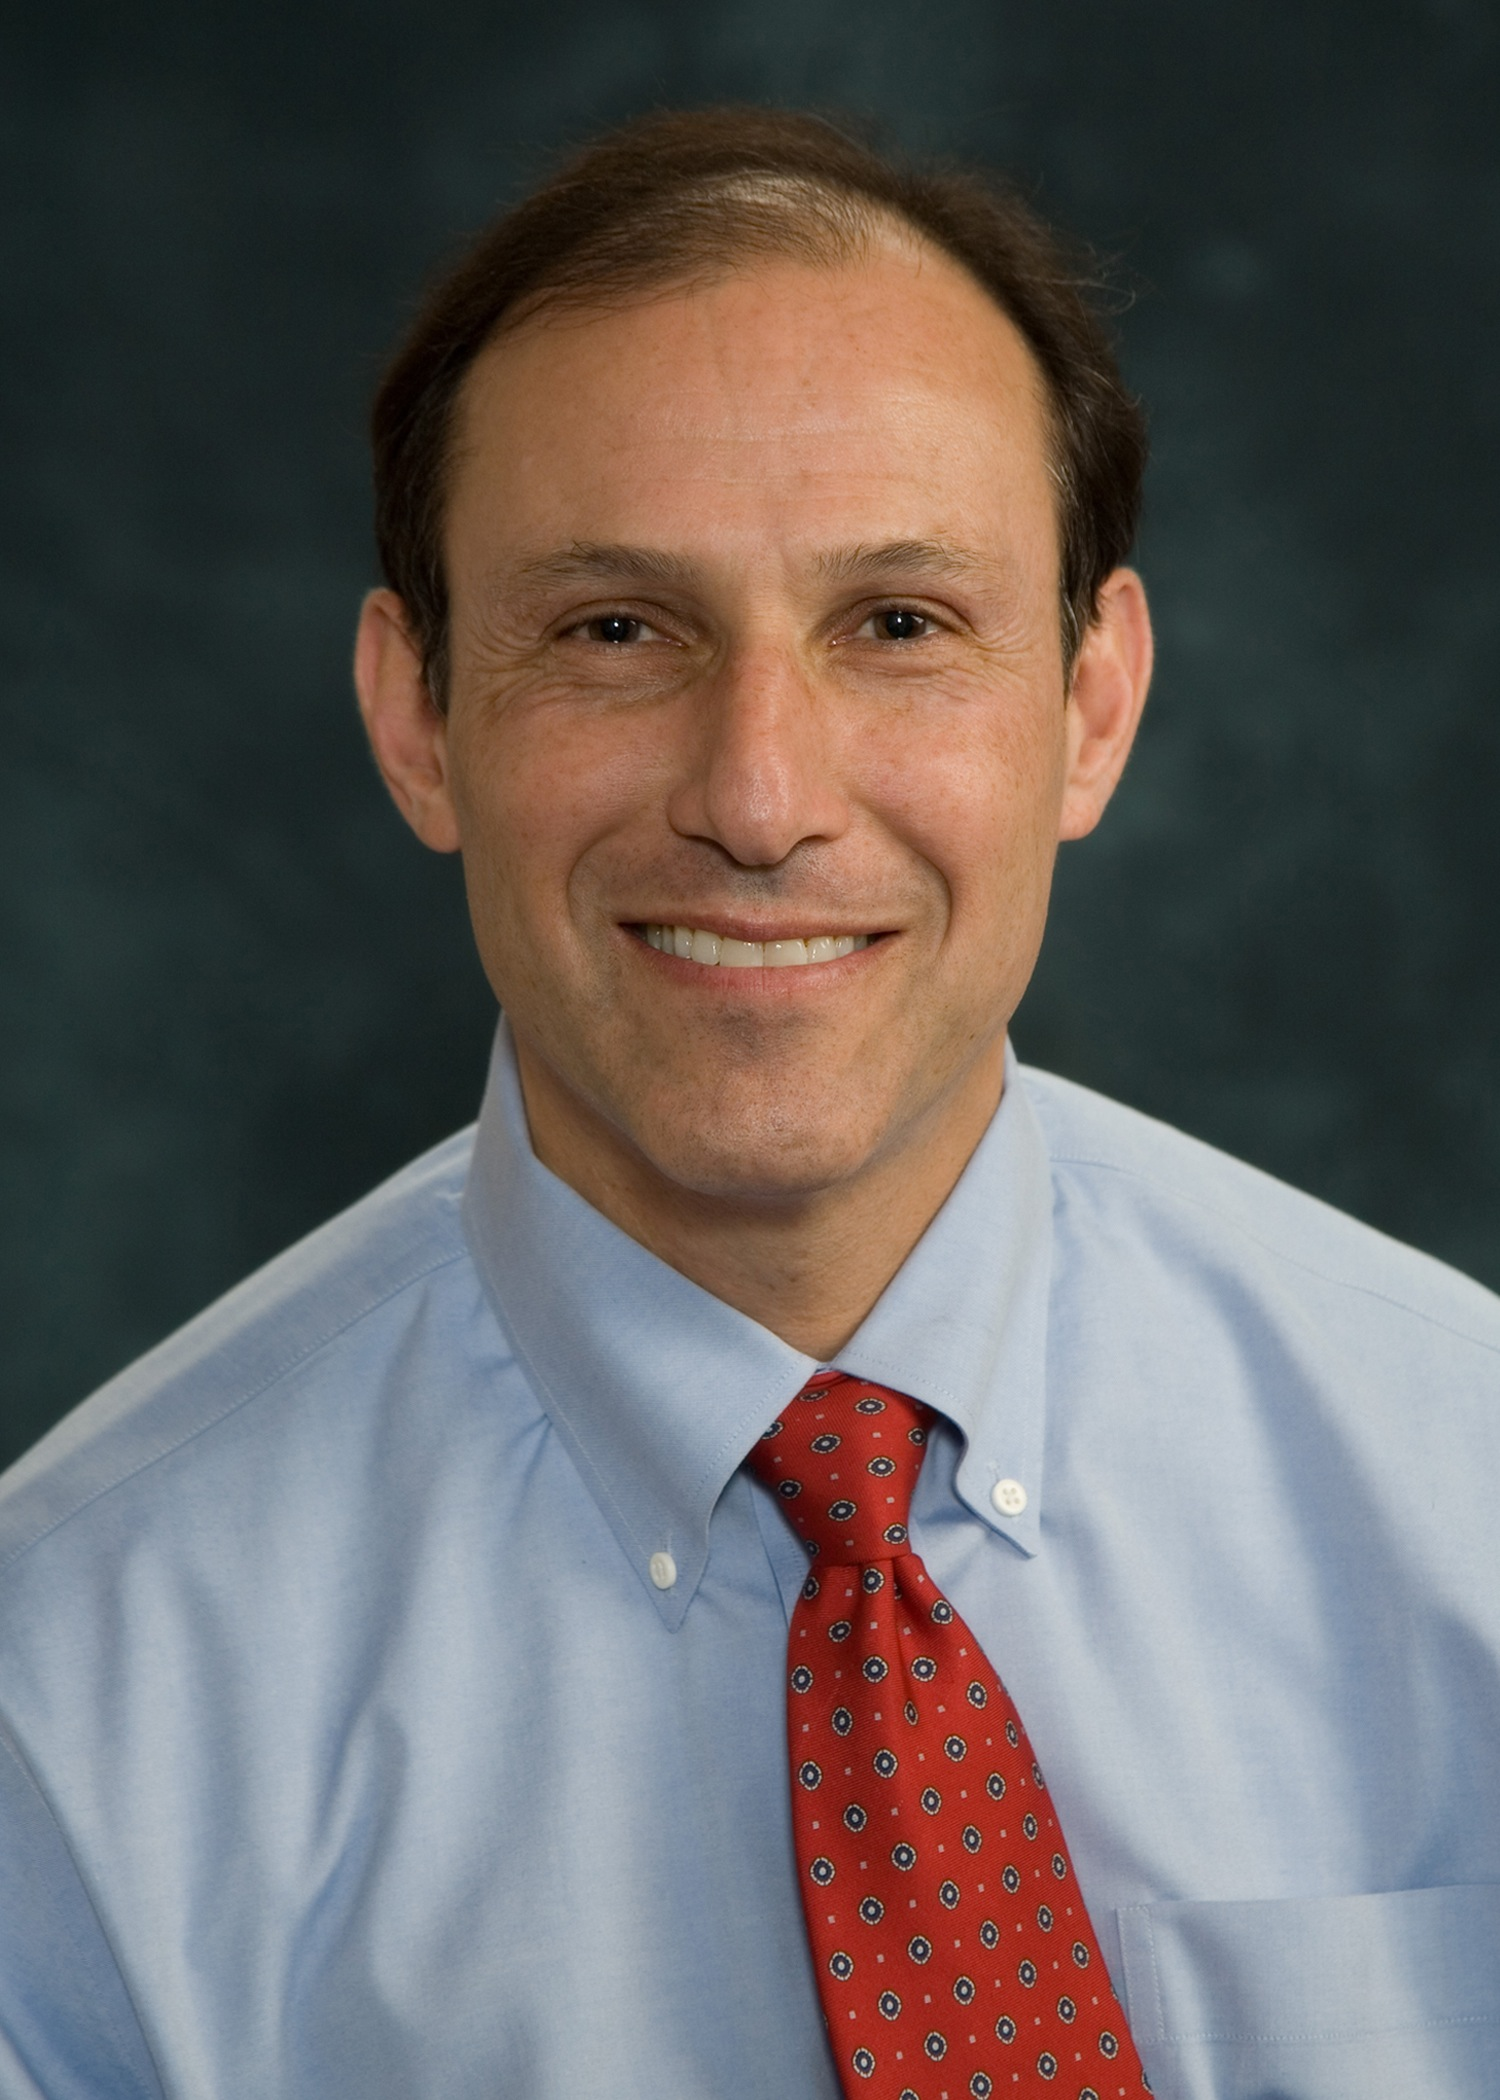 Medical College Physicians Announces New CEO, John R. Schreiber, MD, MPH